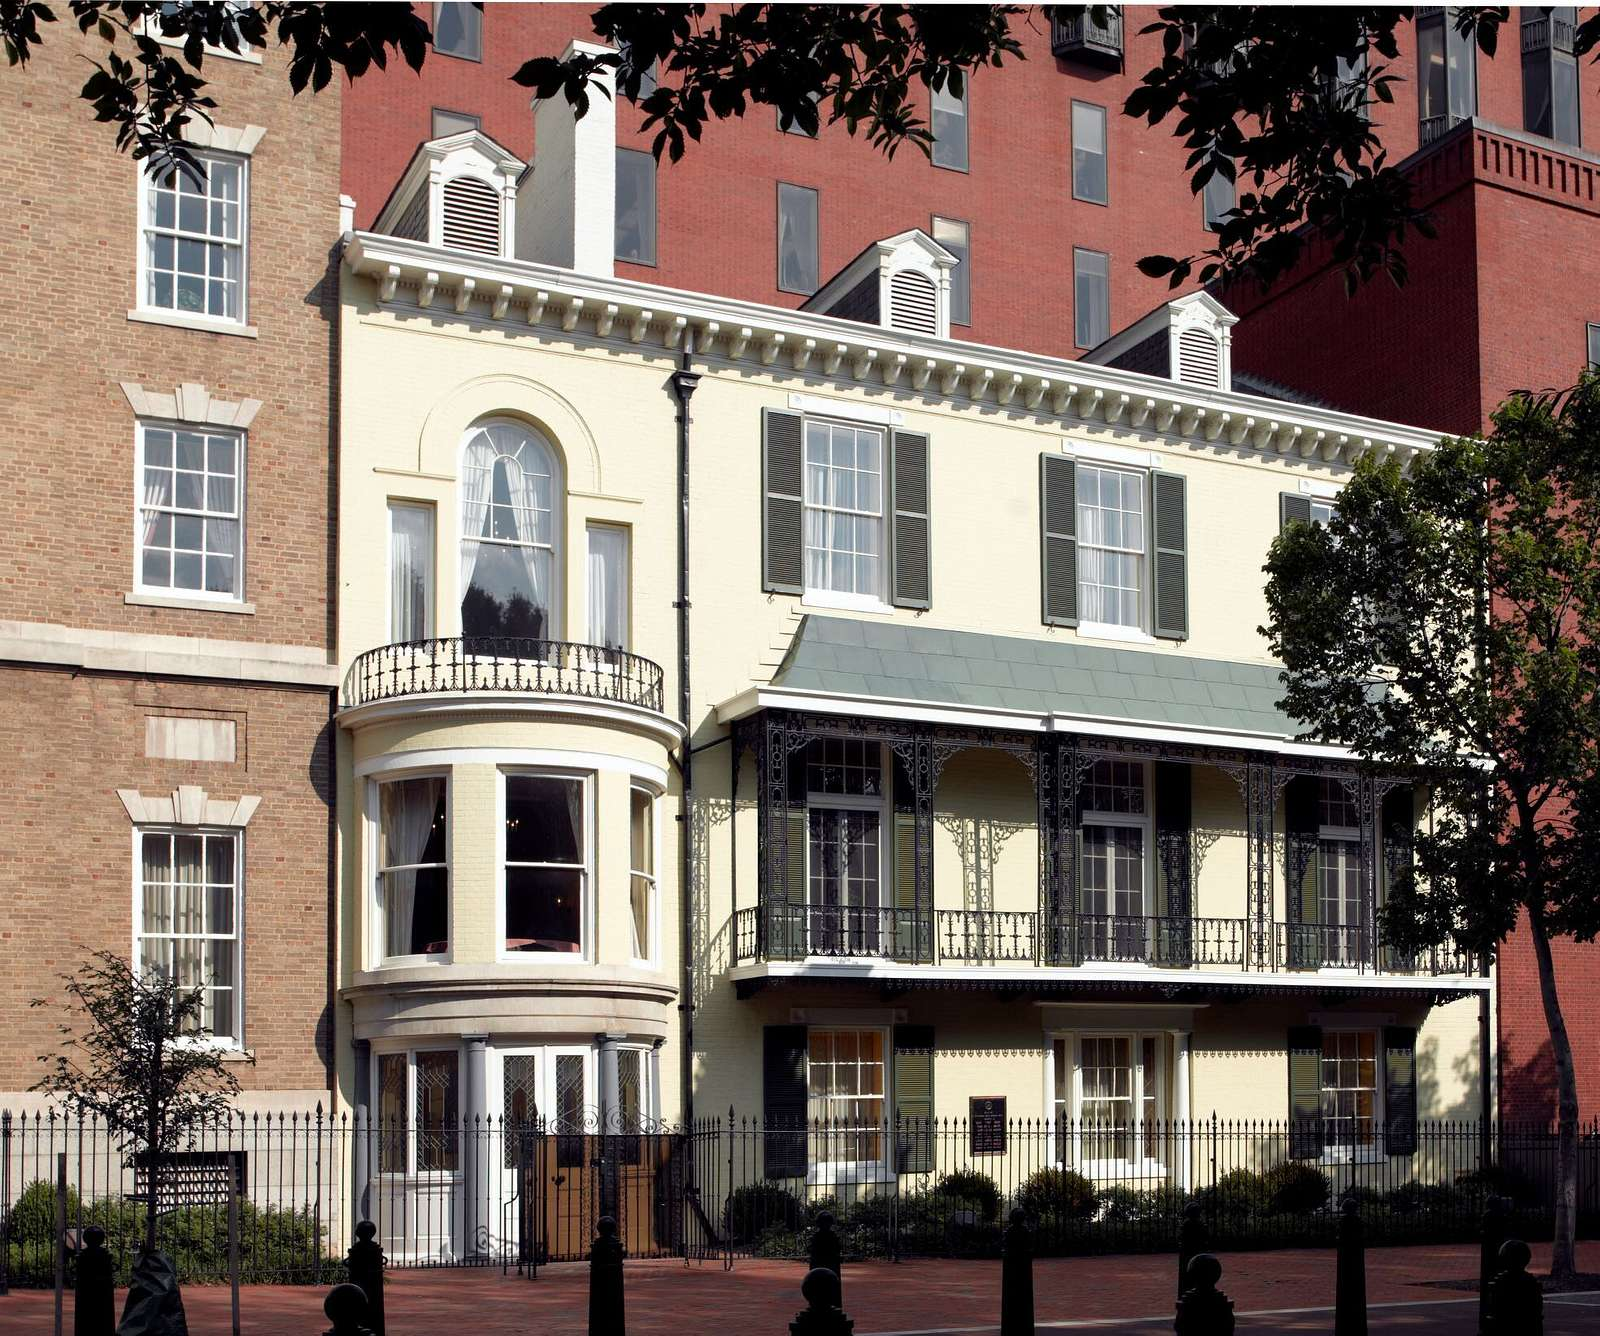 Historic home built by Benjamin Ogle Tayloe in 1830, LaFayette Park, located directly north of the White House on H Street between 15th and 17th Streets, N.W., Washington, D.C.